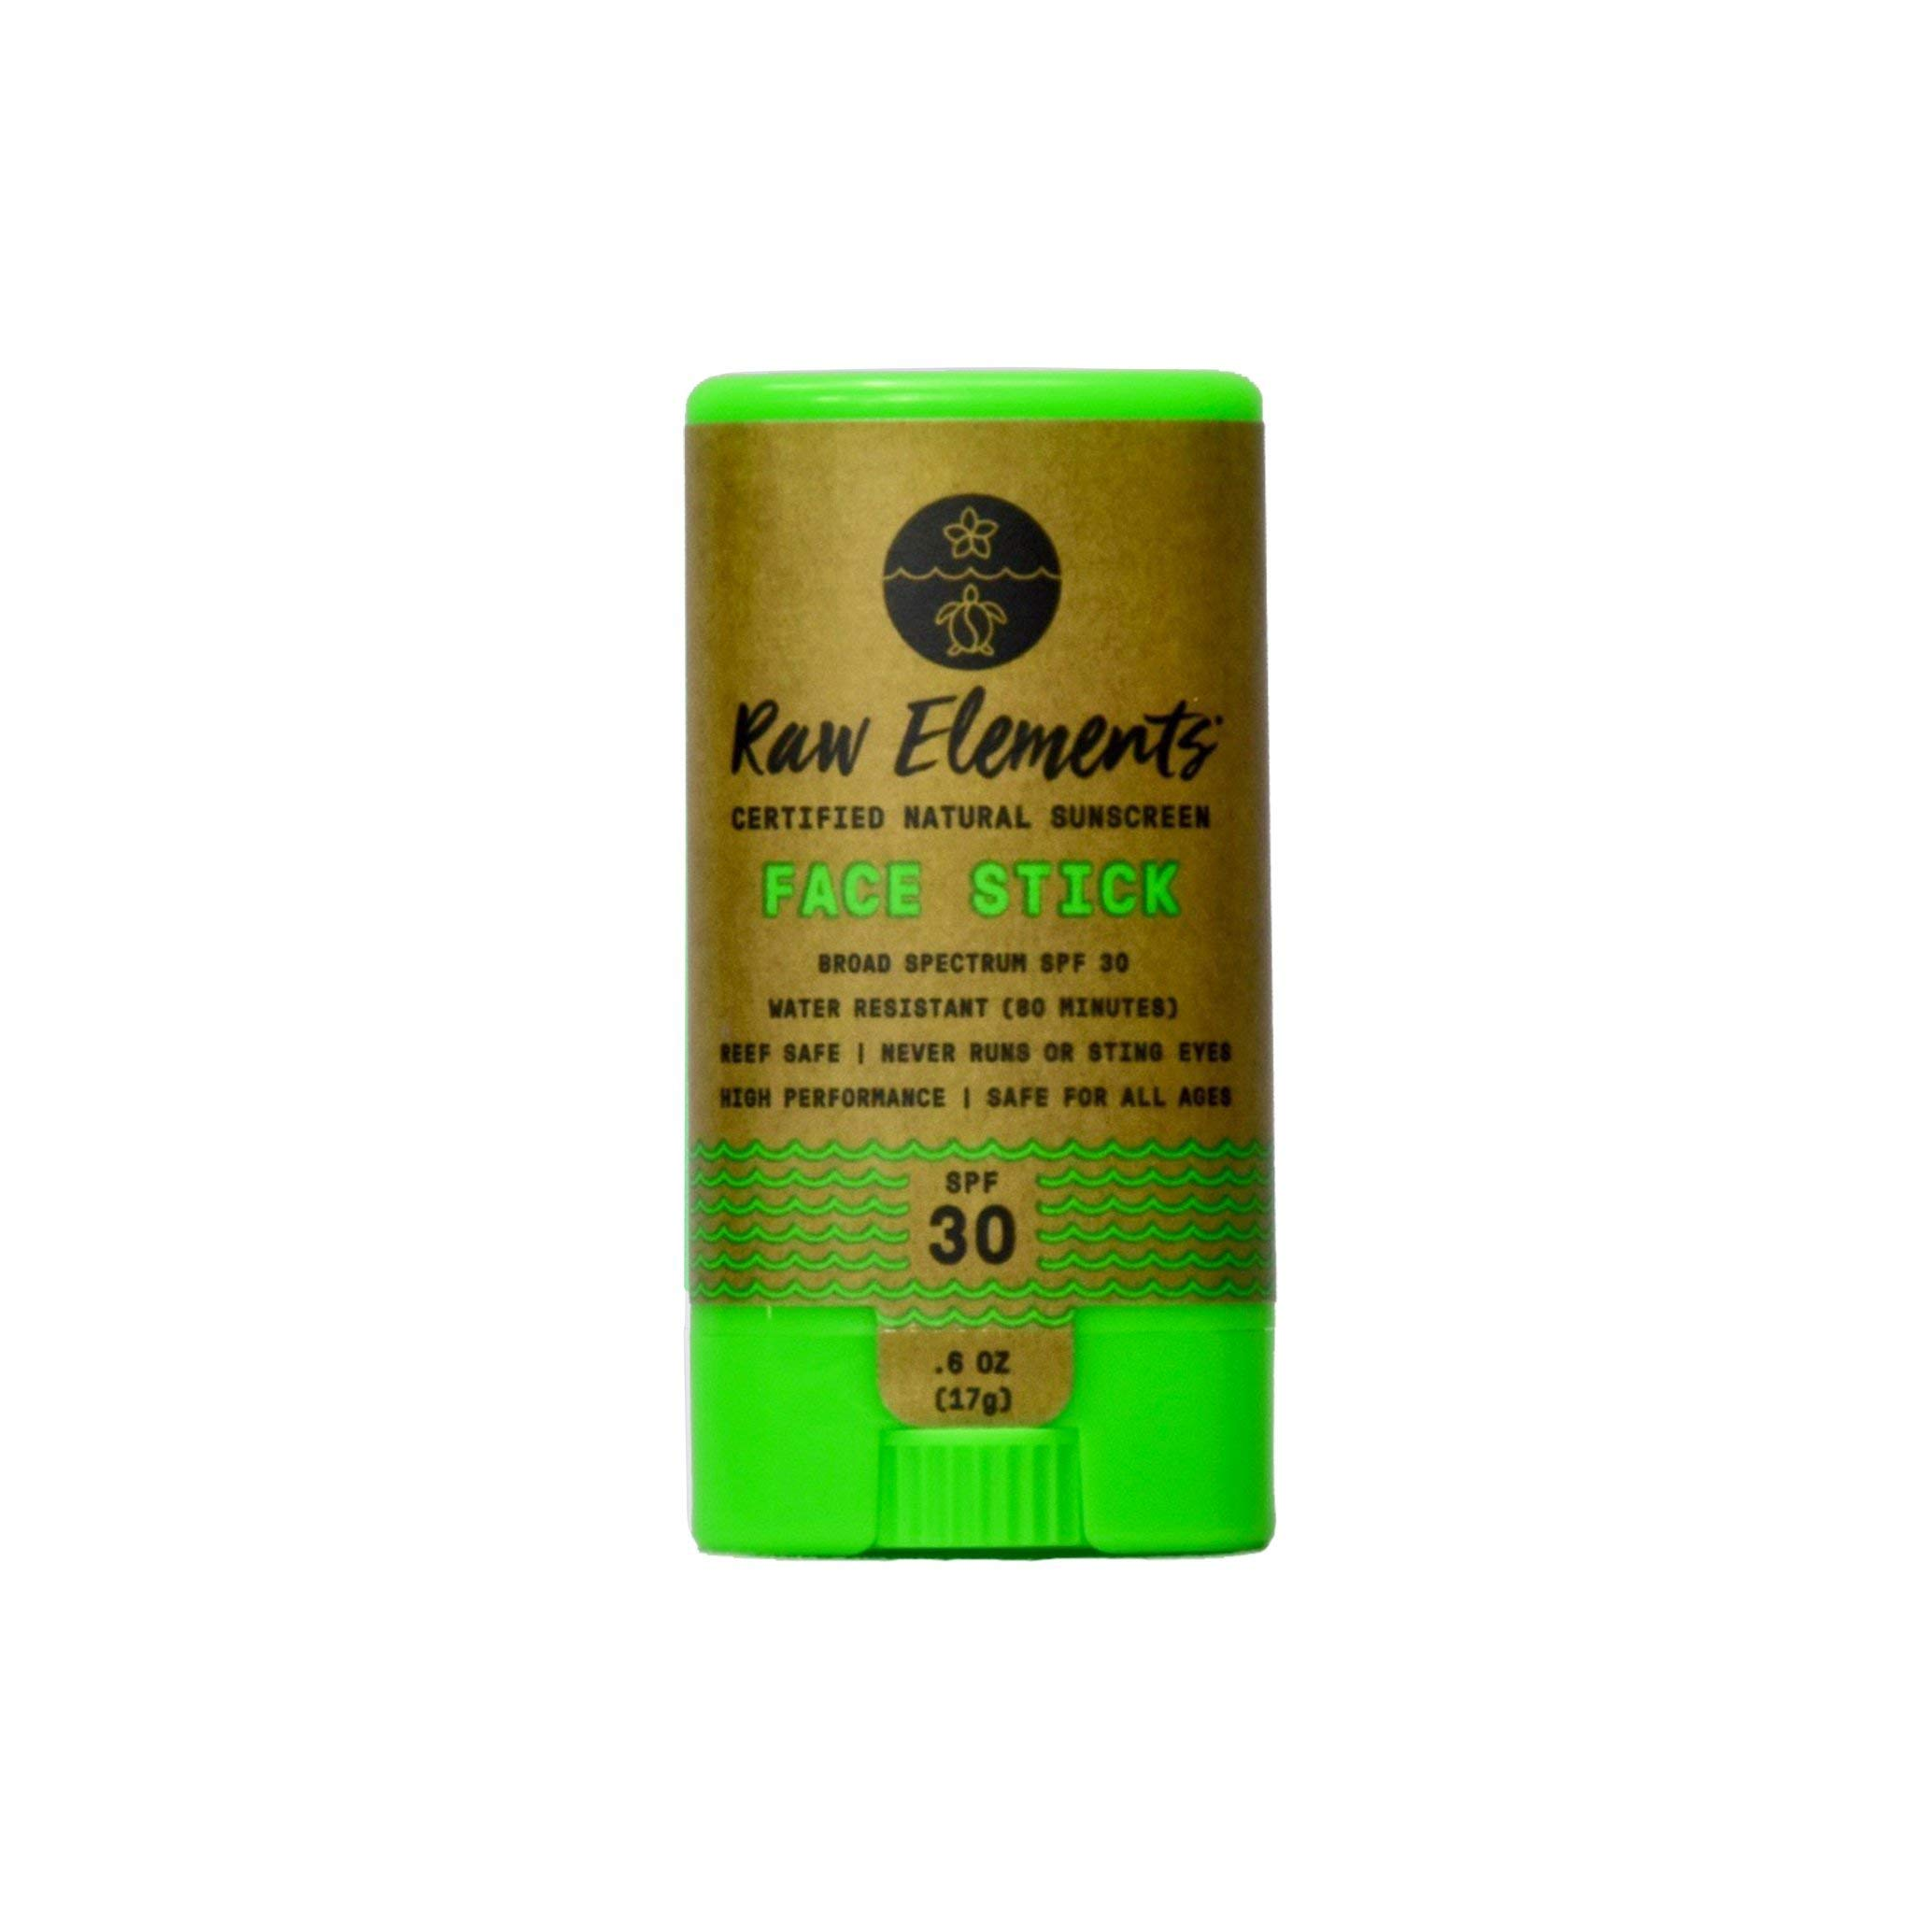 Raw Elements Face Stick Certified Natural Sunscreen | Non-Nano Zinc Oxide, 95% Organic, Very Water Resistant, Reef Safe, Non-GMO, Cruelty Free, SPF 30+, All Ages Safe, Moisturizing, 0.6oz